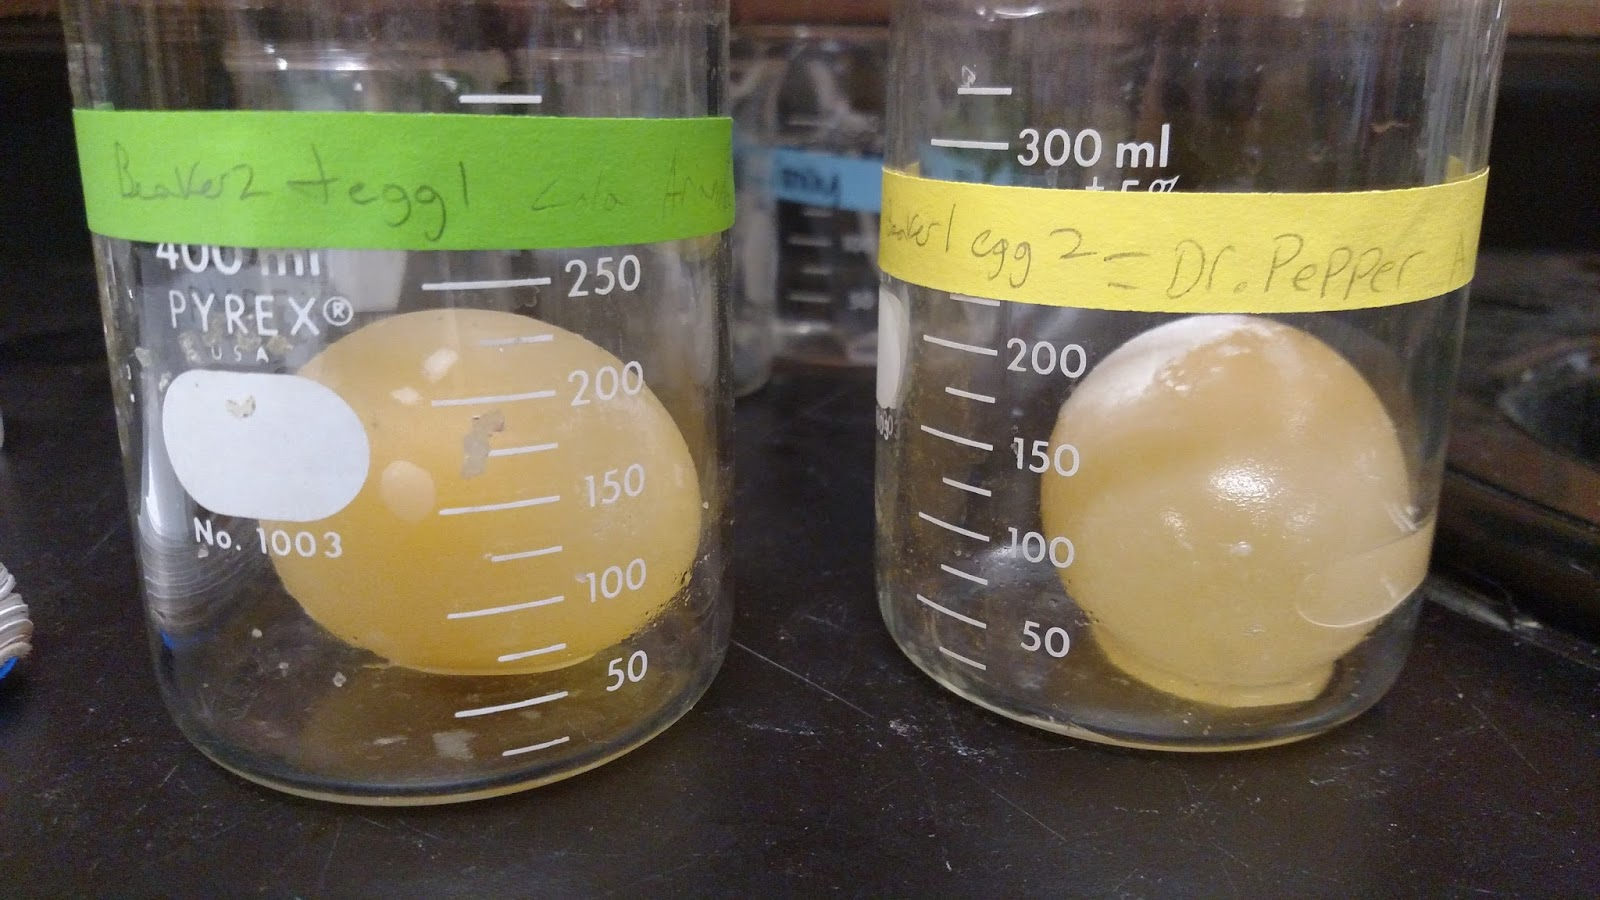 egg osmosis lab report Egg lab: lab report due date _____ 10 pts/day off for labs handed in late this lab will be graded as a test grade please use the following rubric as a checklist when doing your lab.